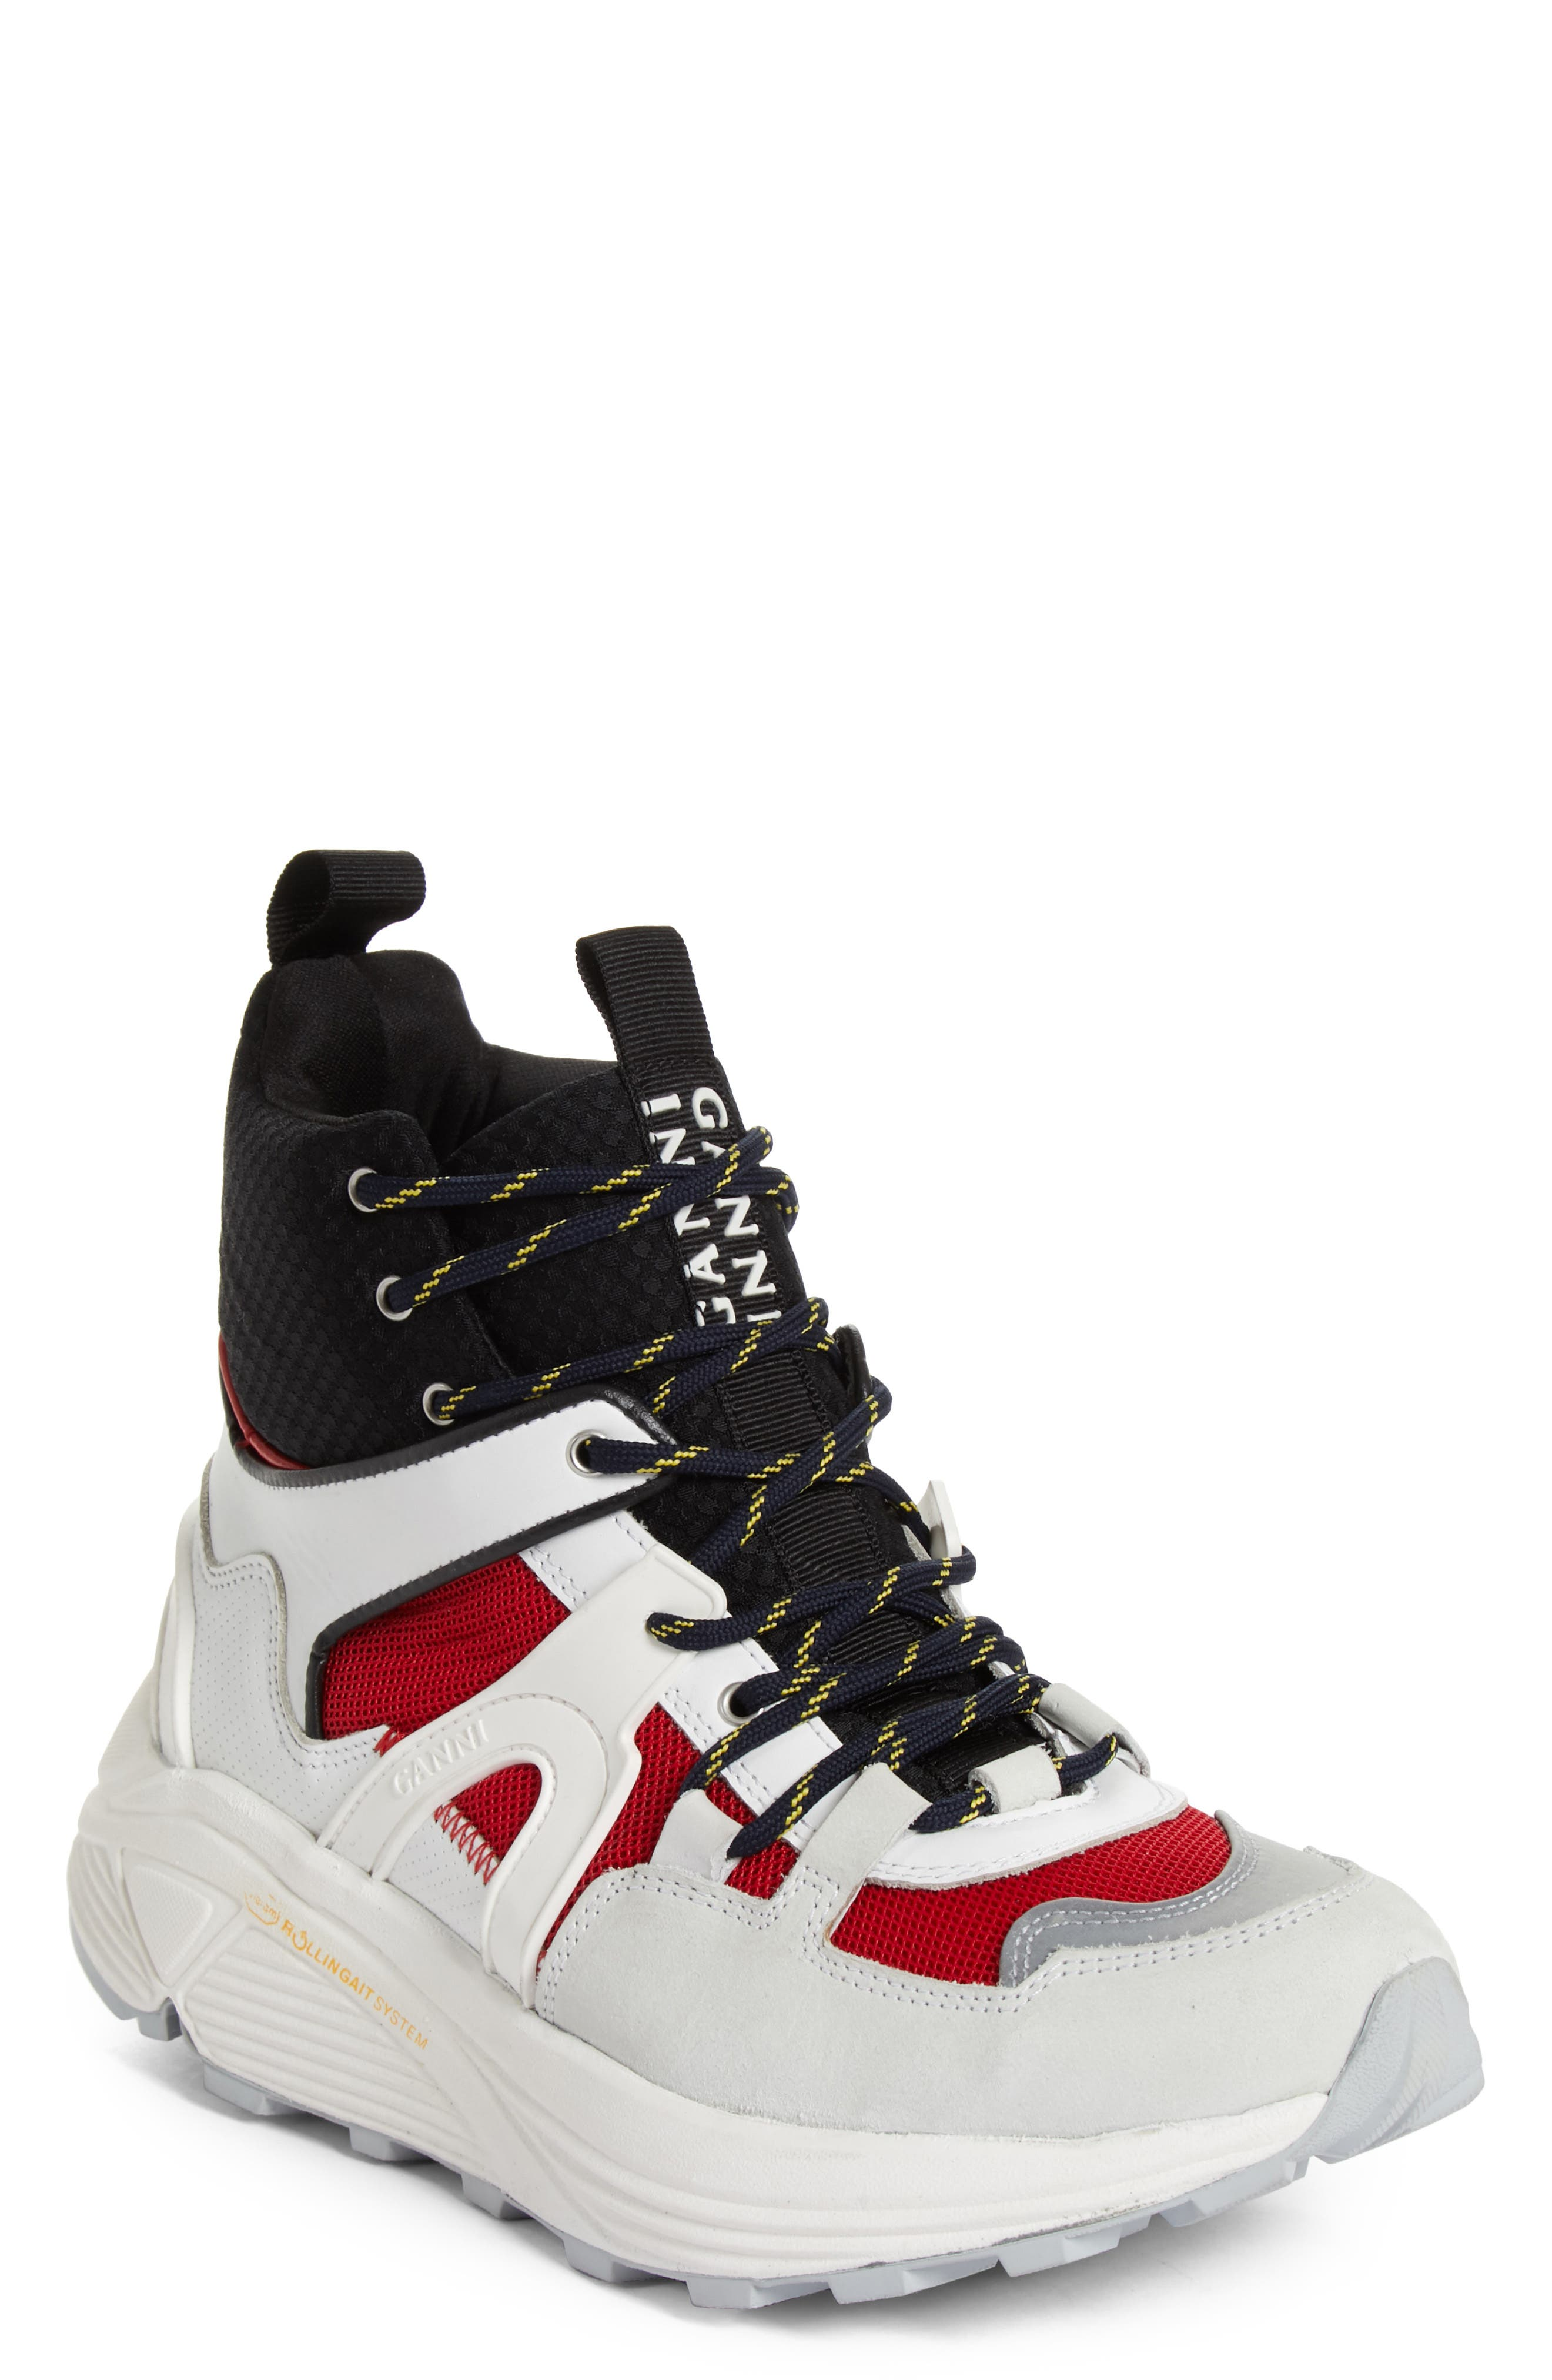 GANNI High Top Tech Sneaker, Main, color, FIERY RED 403